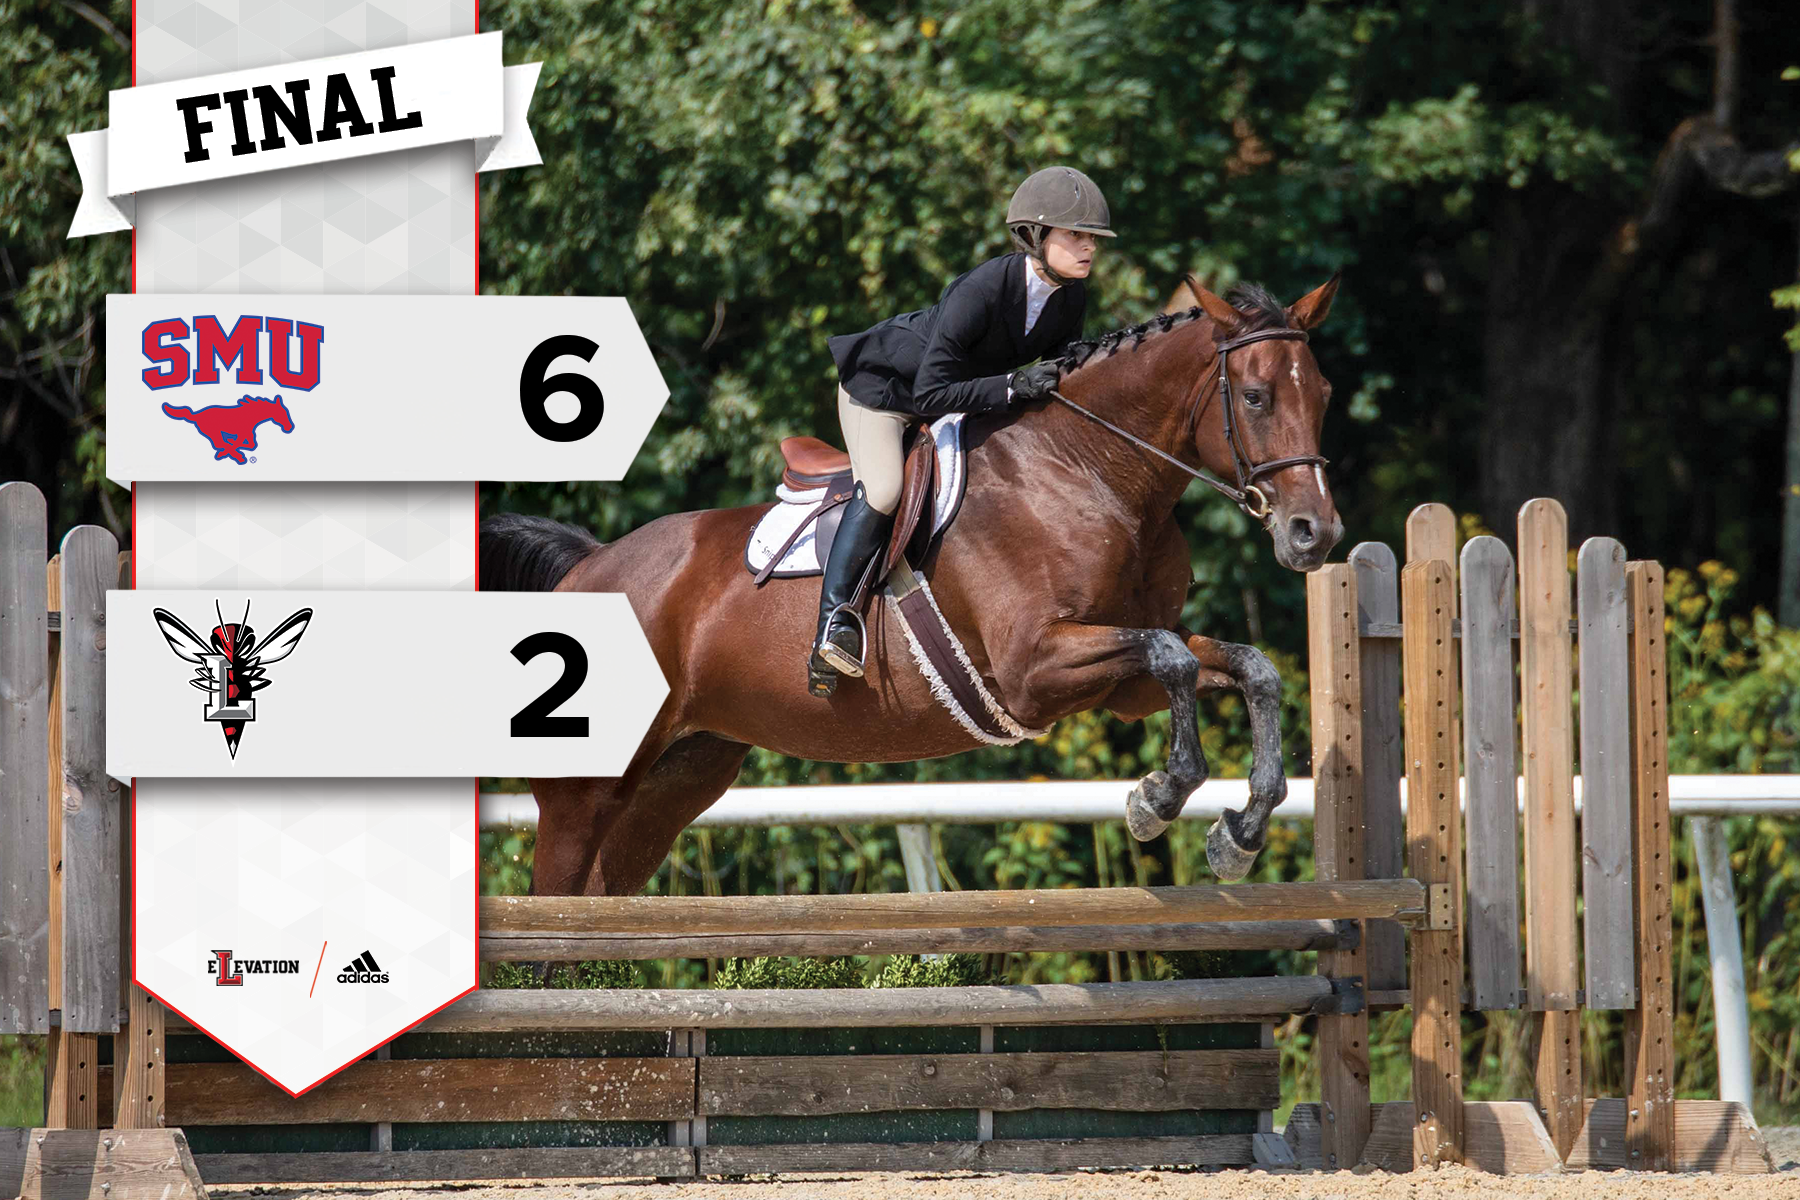 A rider jumps over a fence on a horse. Graphic showing SMU's 6-2 win over Lynchburg in equestrian competition.